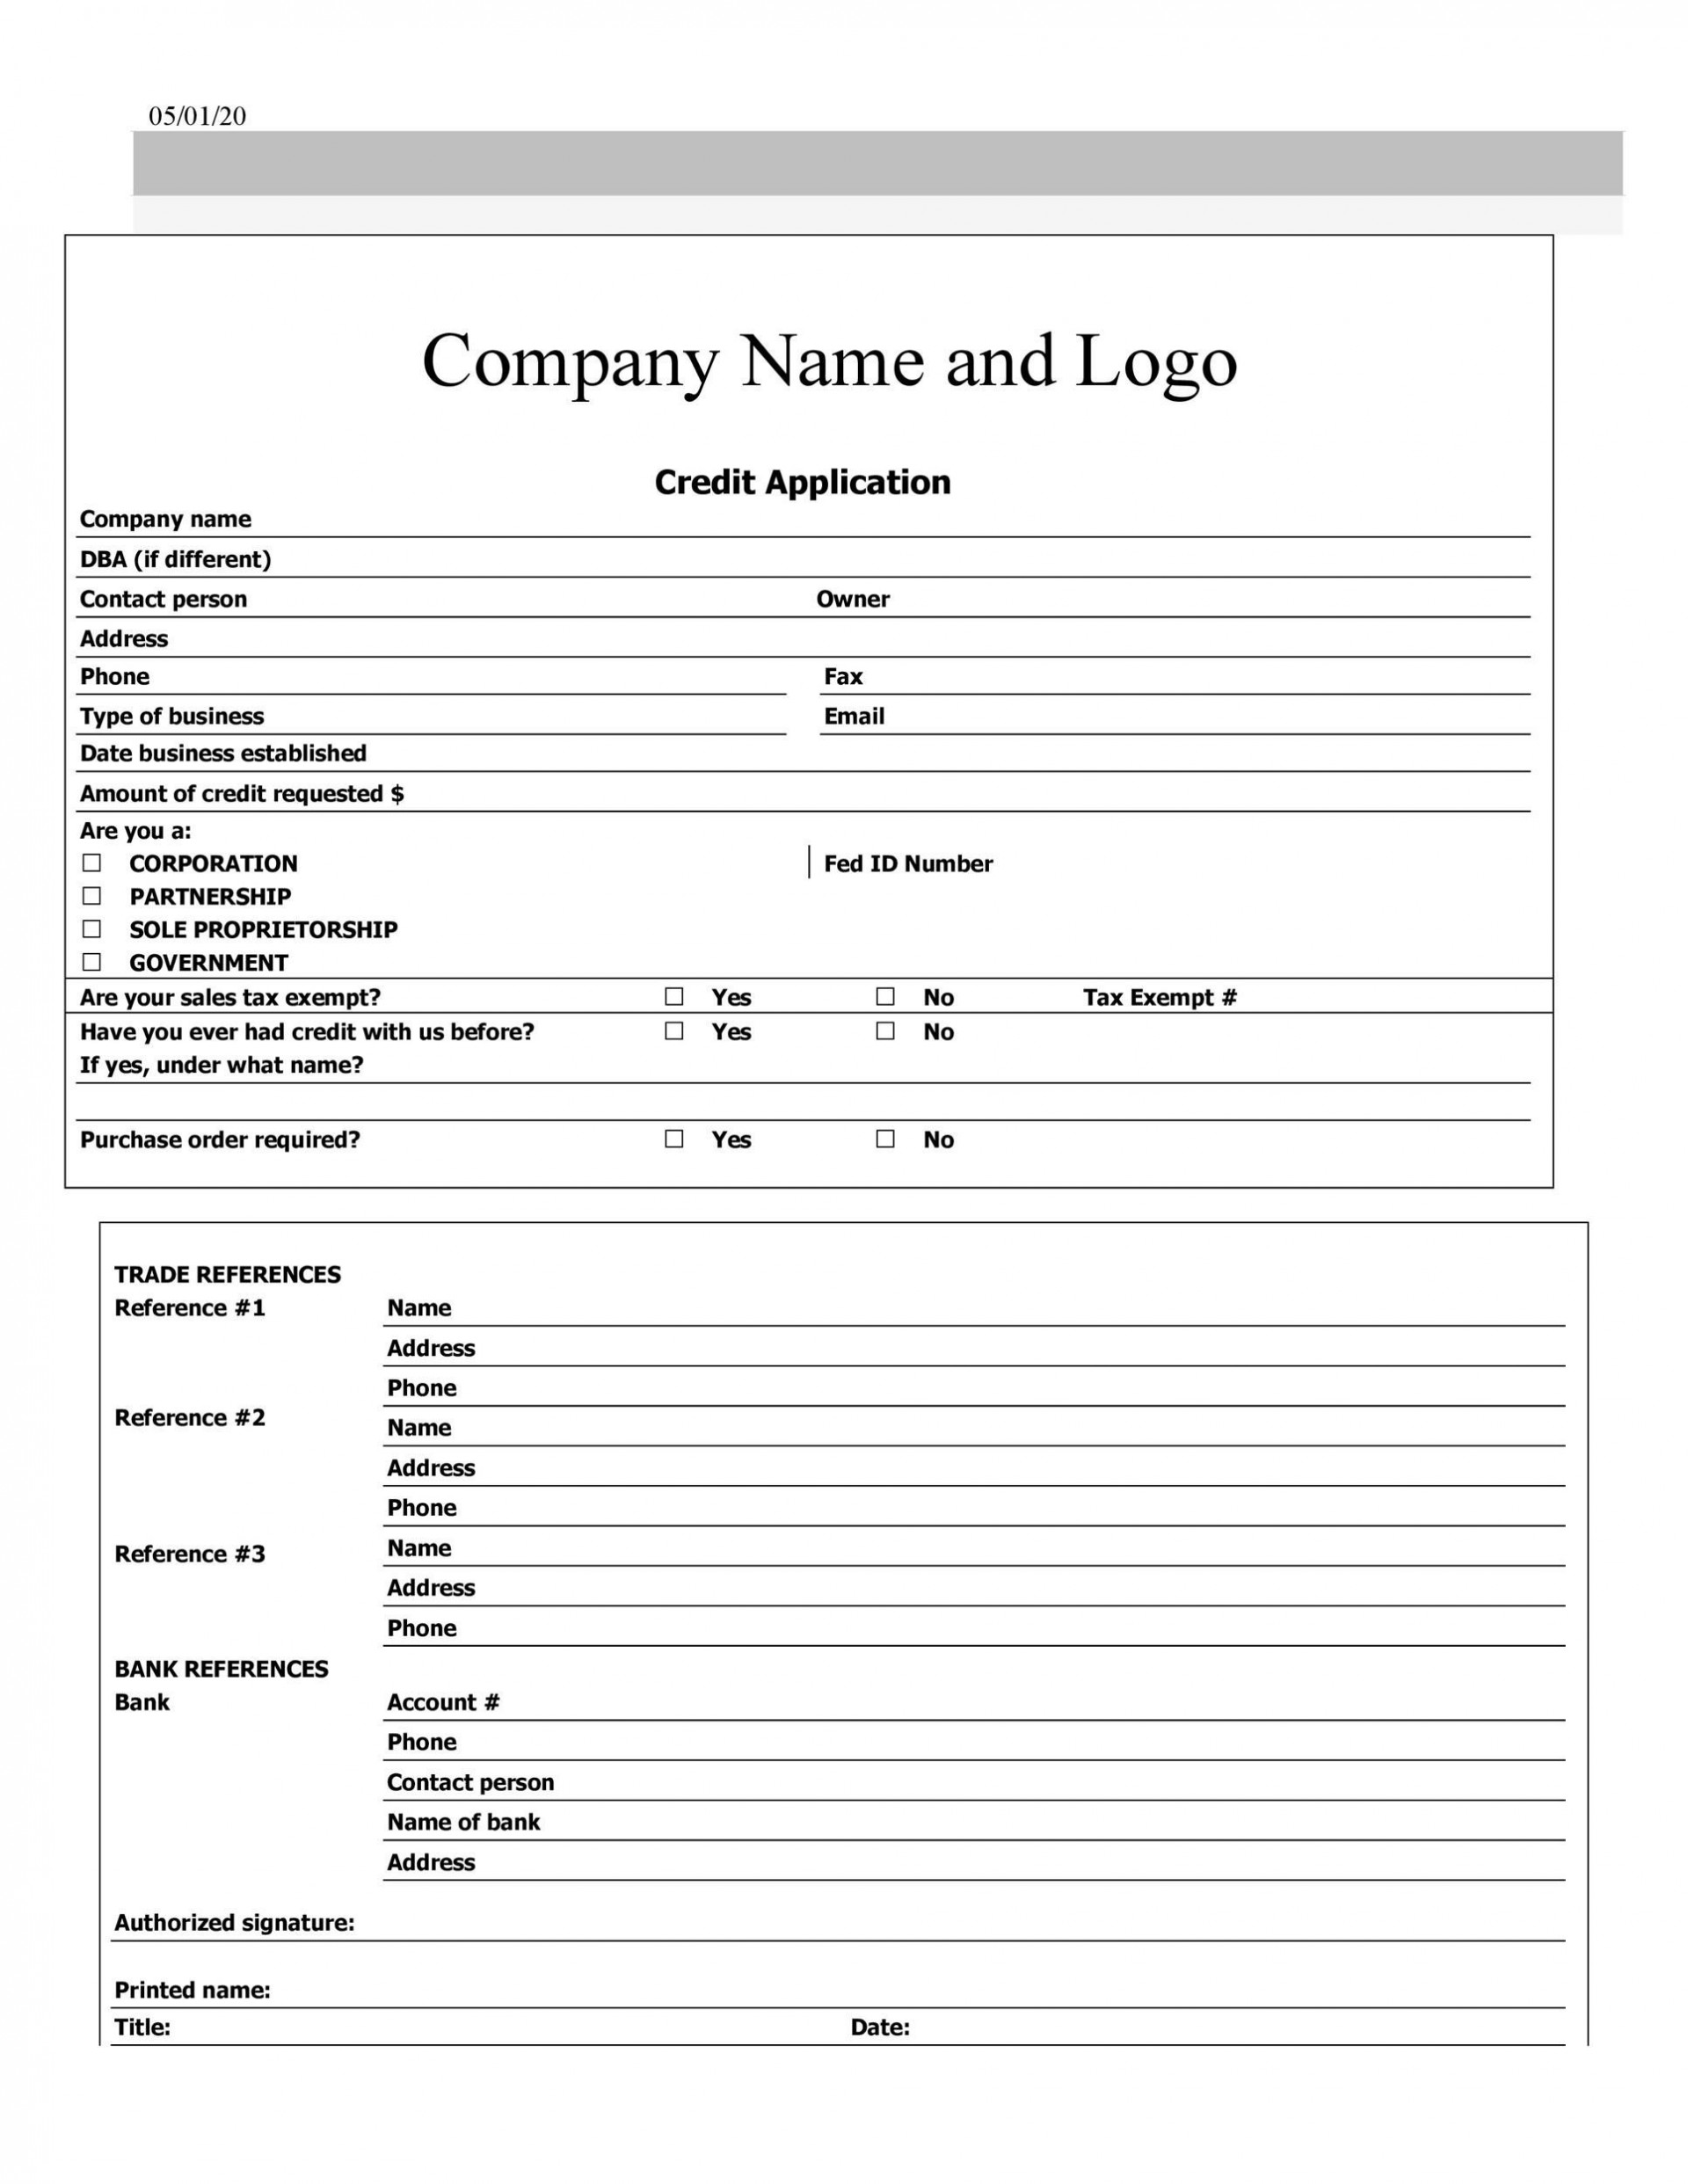 008 Marvelou New Customer Application Form Template Uk Example  Account Free1920